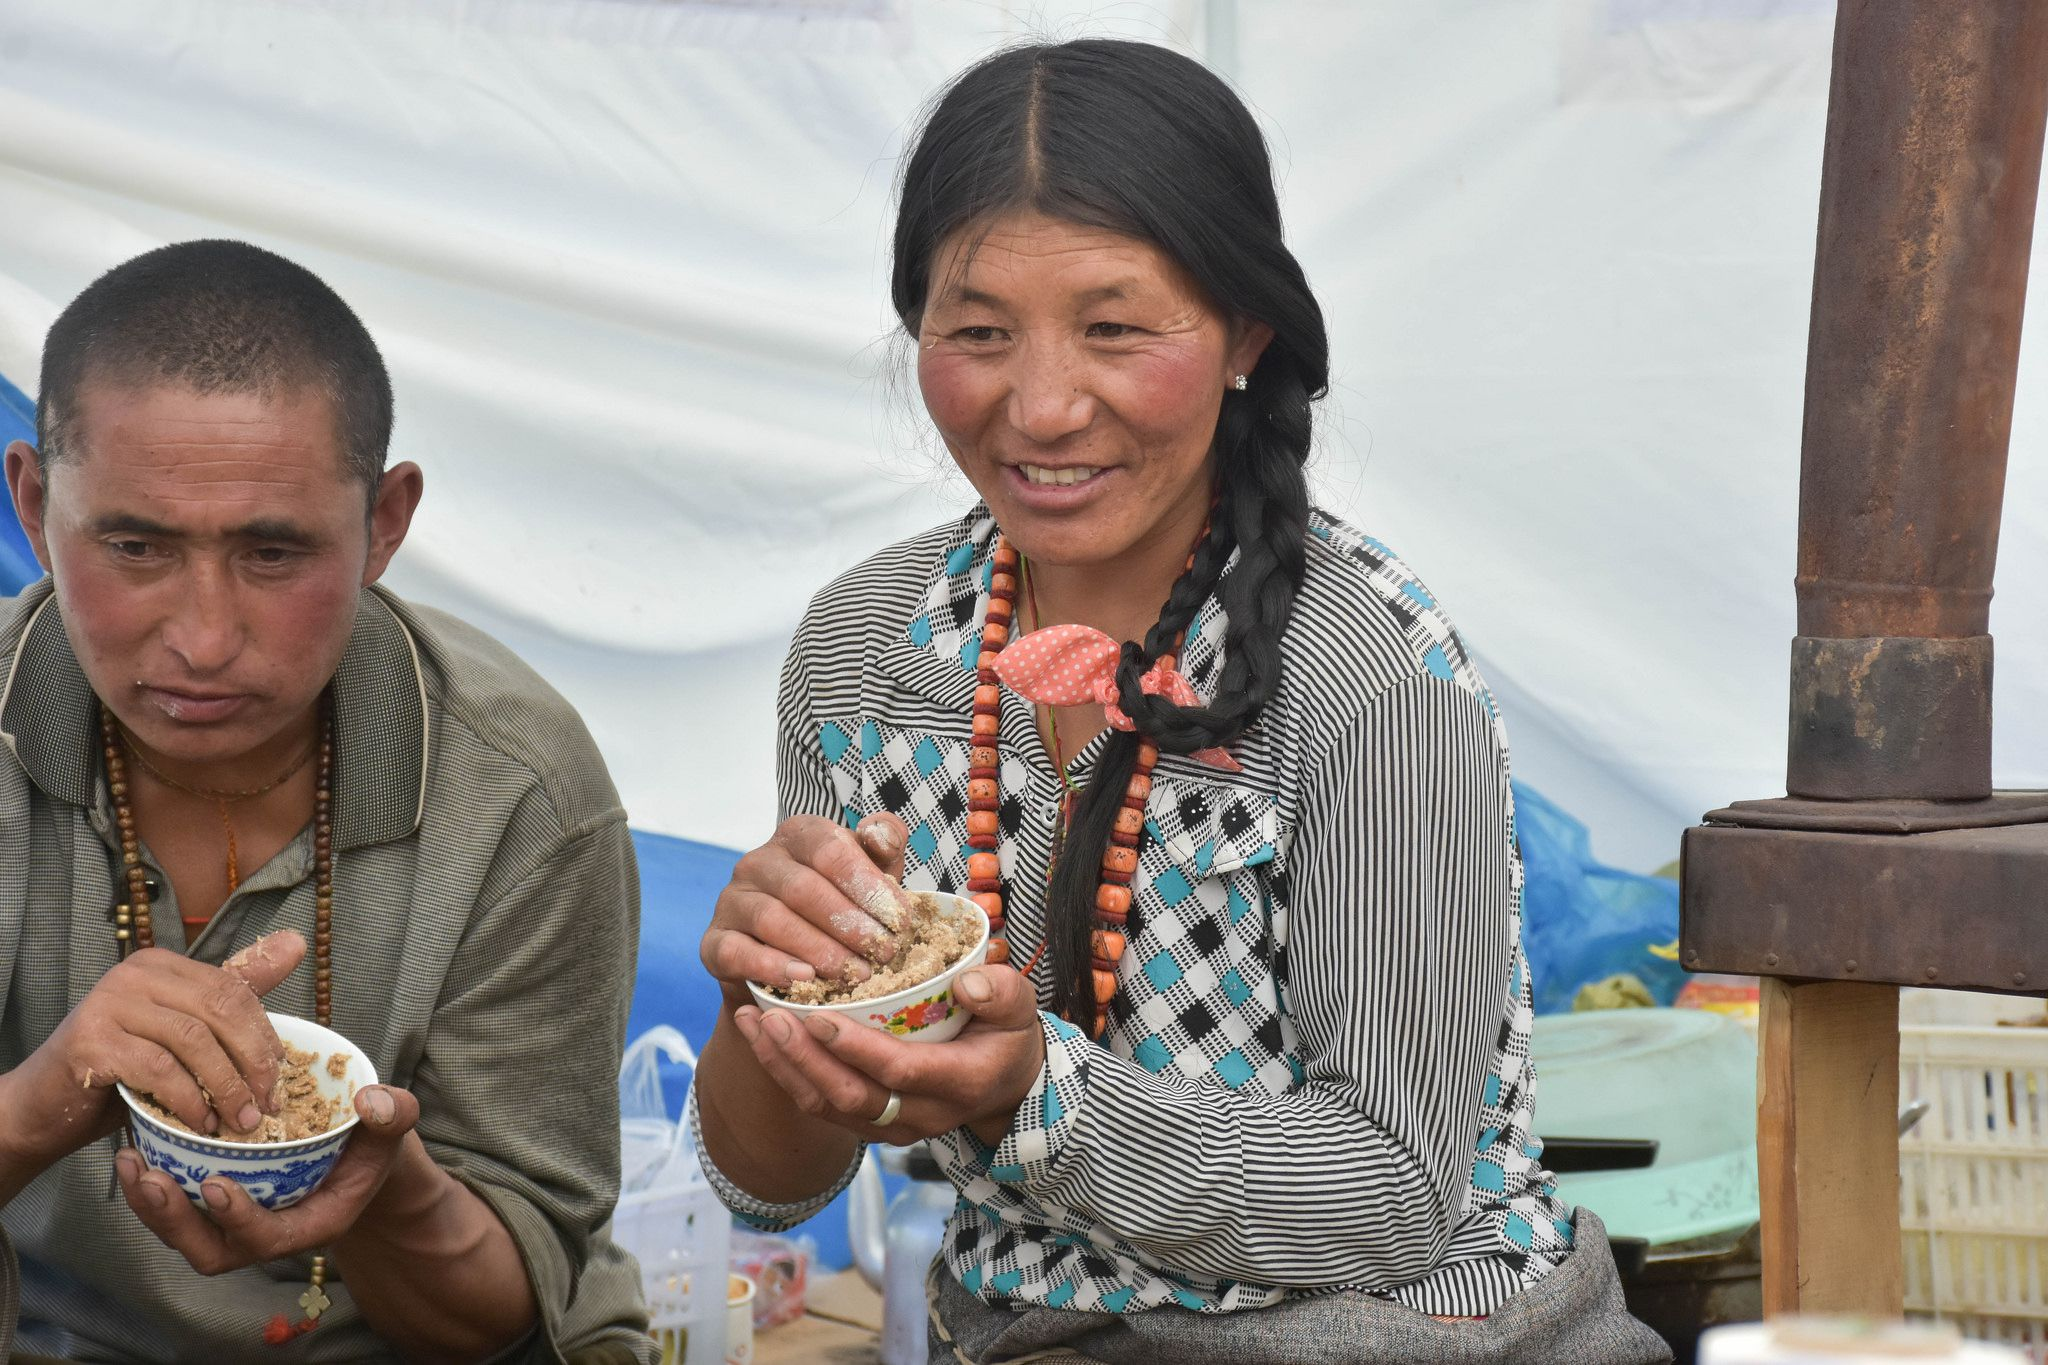 Yak butter teas are a conventional tibetan drink having a practical purpose - eater bloodstream, muscle, fat